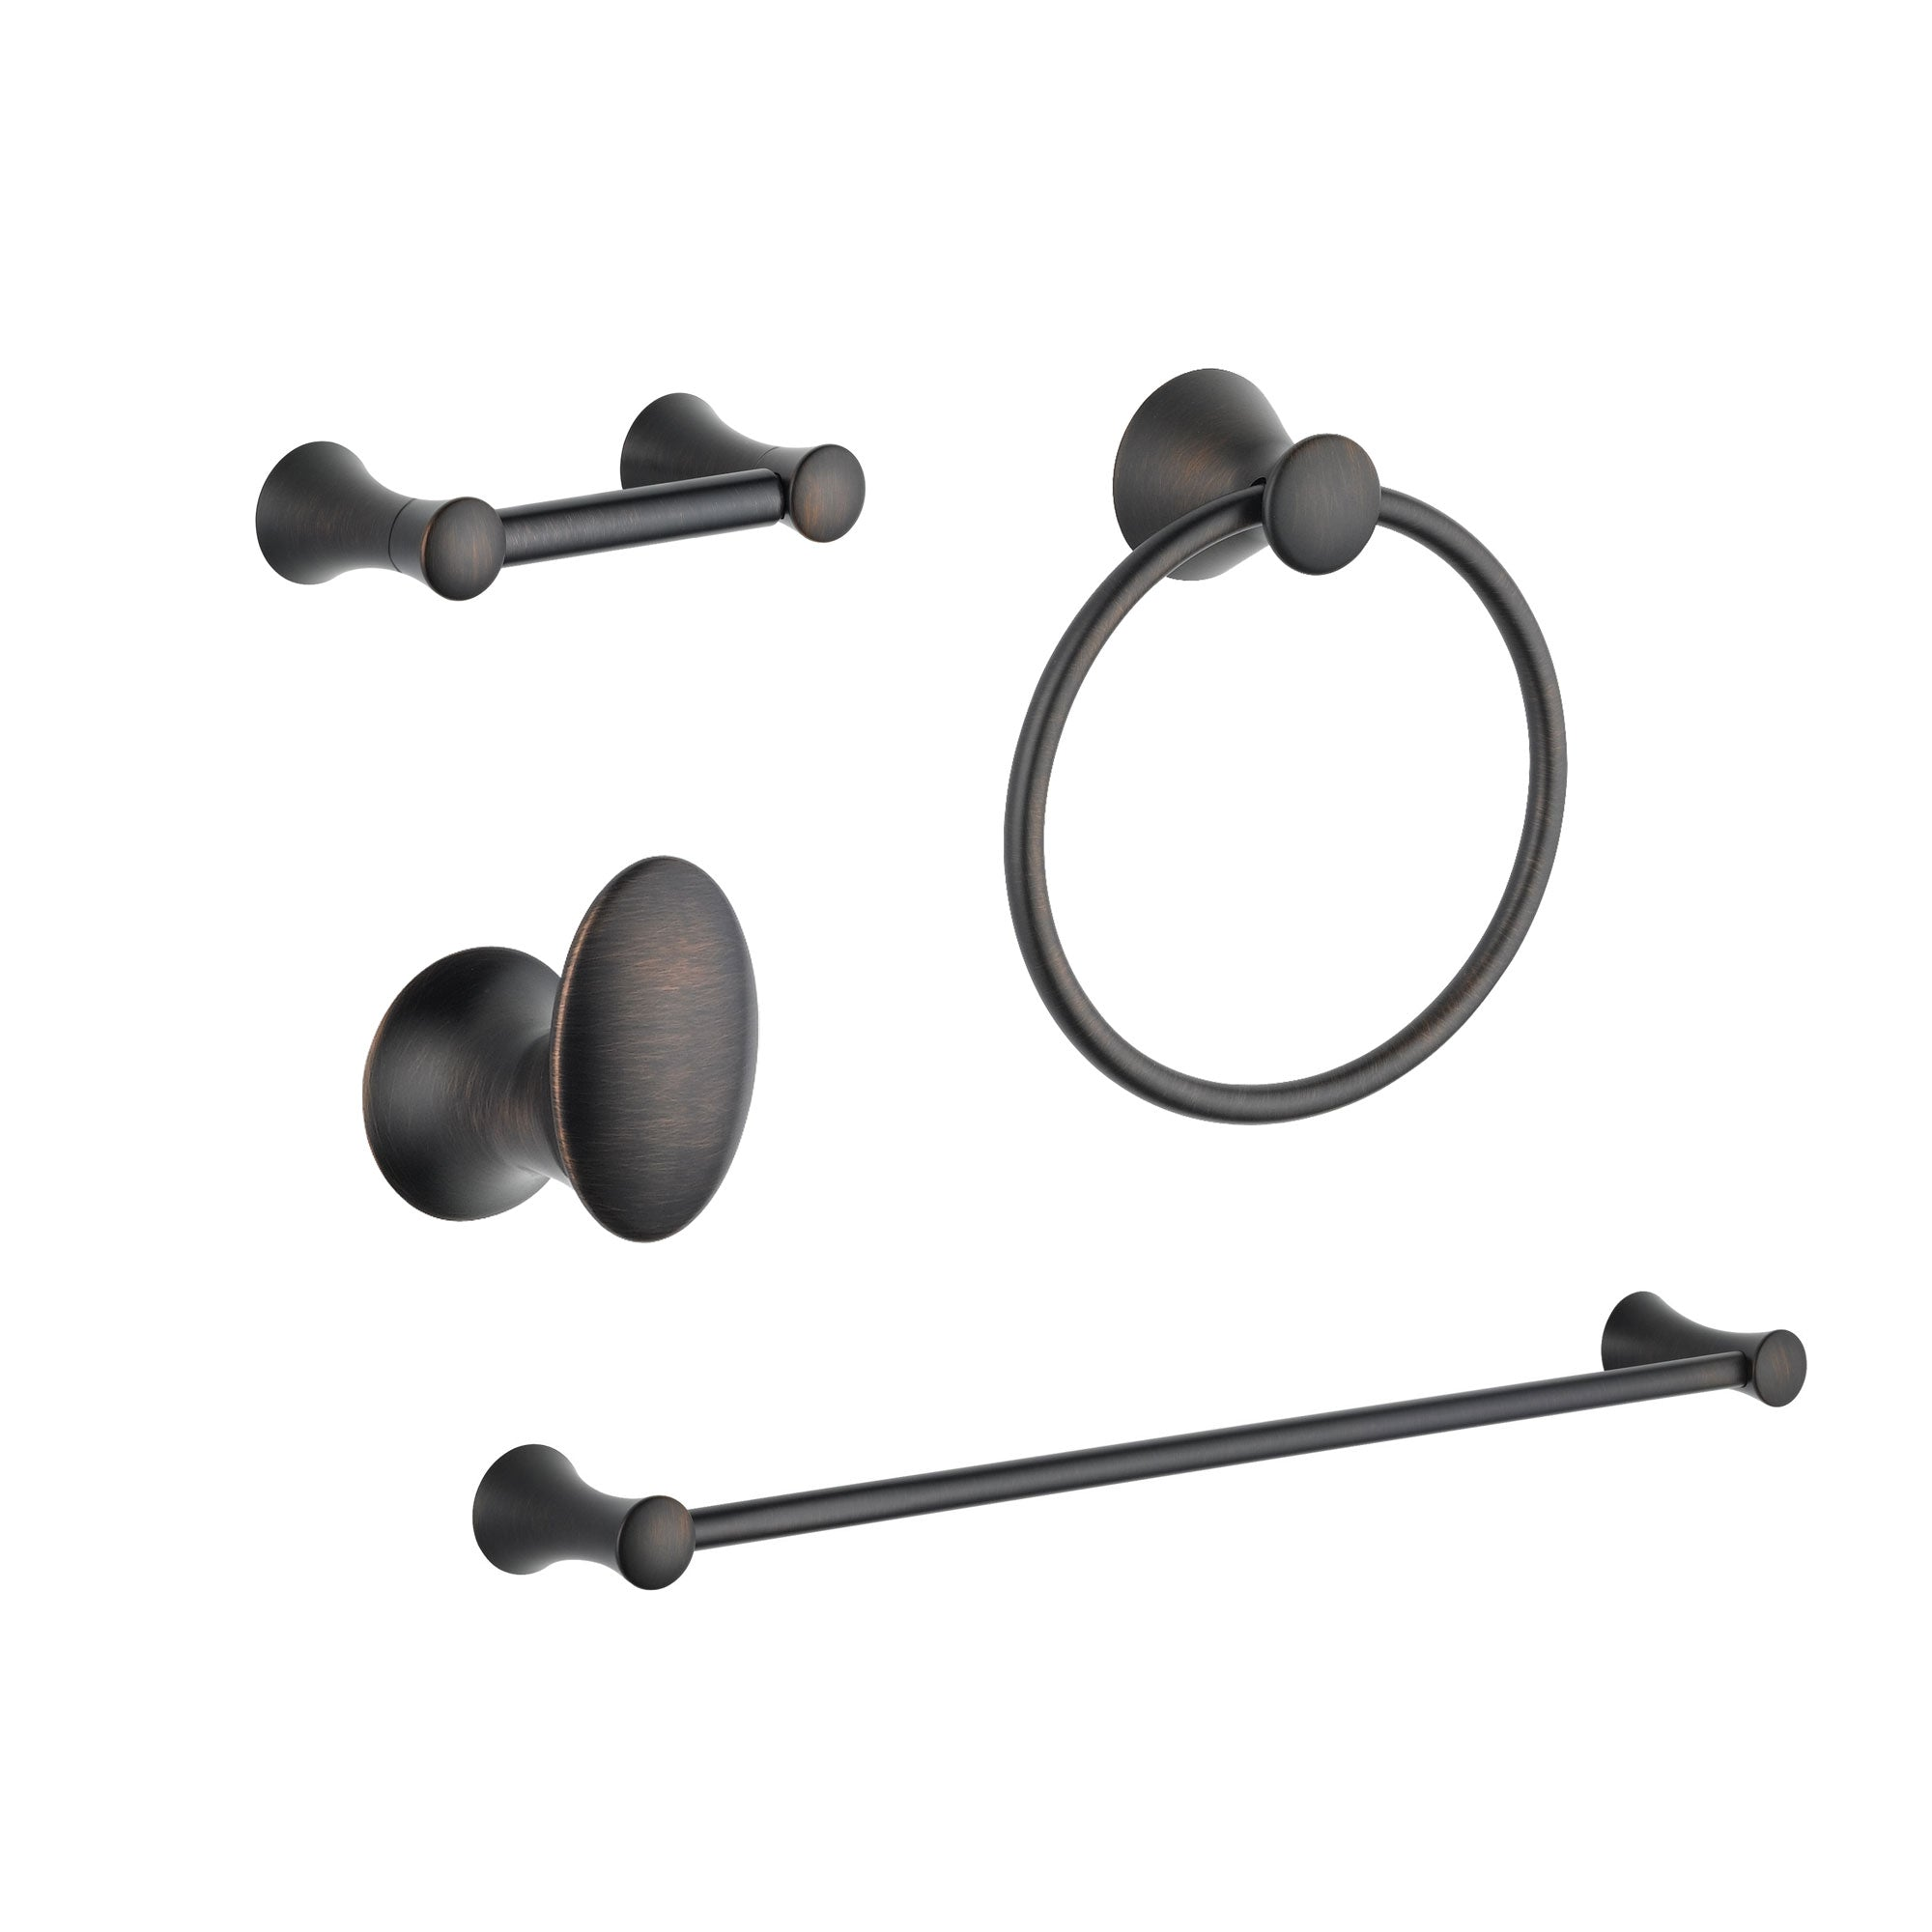 "Delta Lahara Venetian Bronze DELUXE Bathroom Accessory Set Includes: 24"" Towel Bar, Toilet Paper Holder, Robe Hook, and Towel Ring D10053AP"